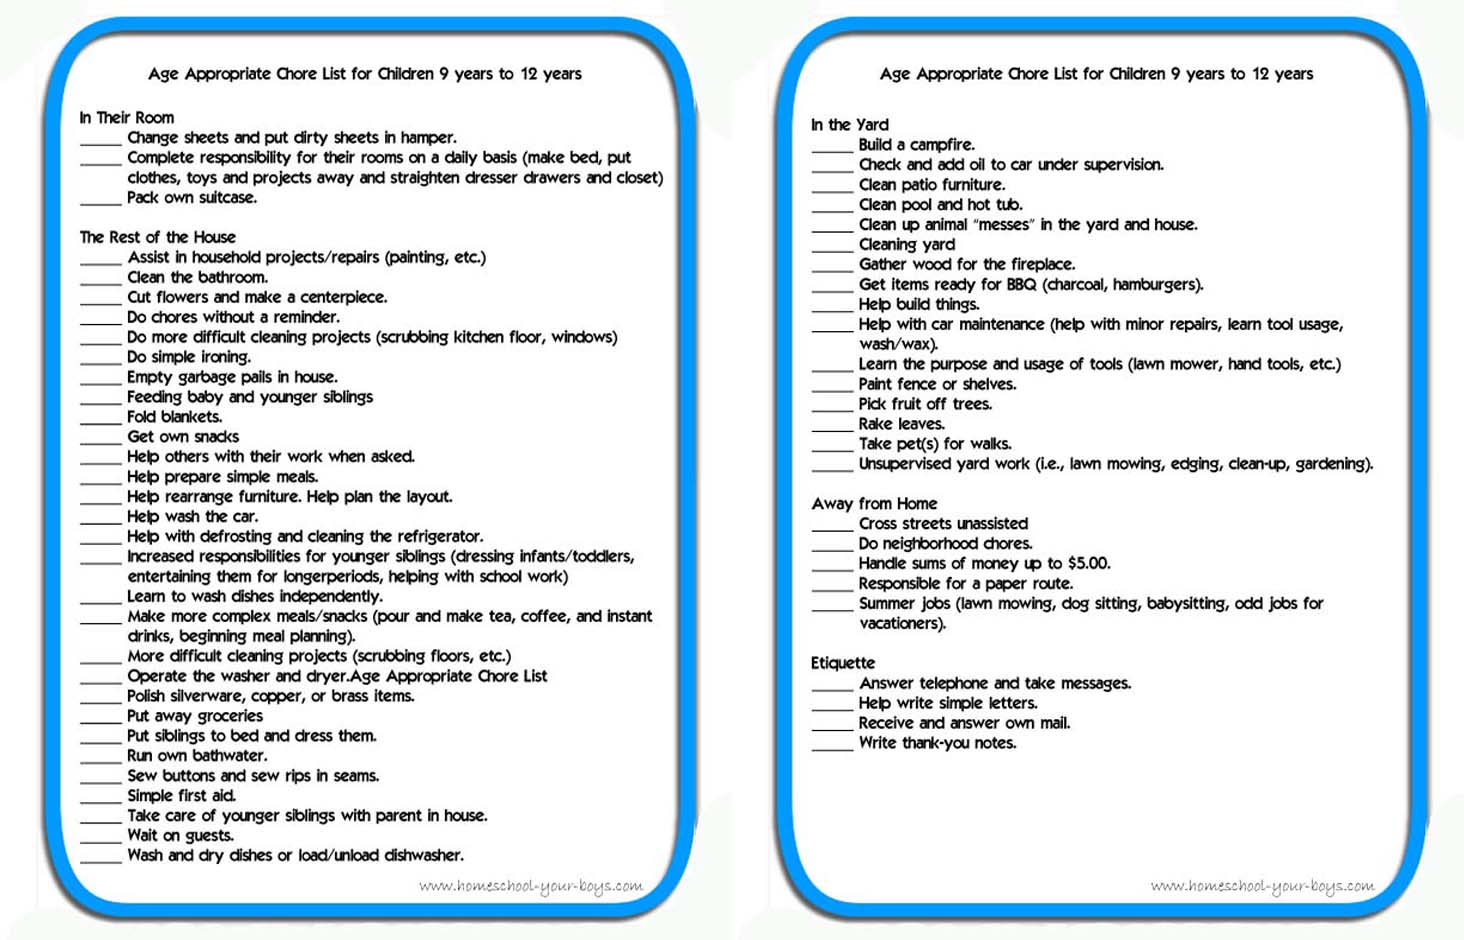 printablechorelist both jpg printable age appropriate chore list for children 9 years to 12 years